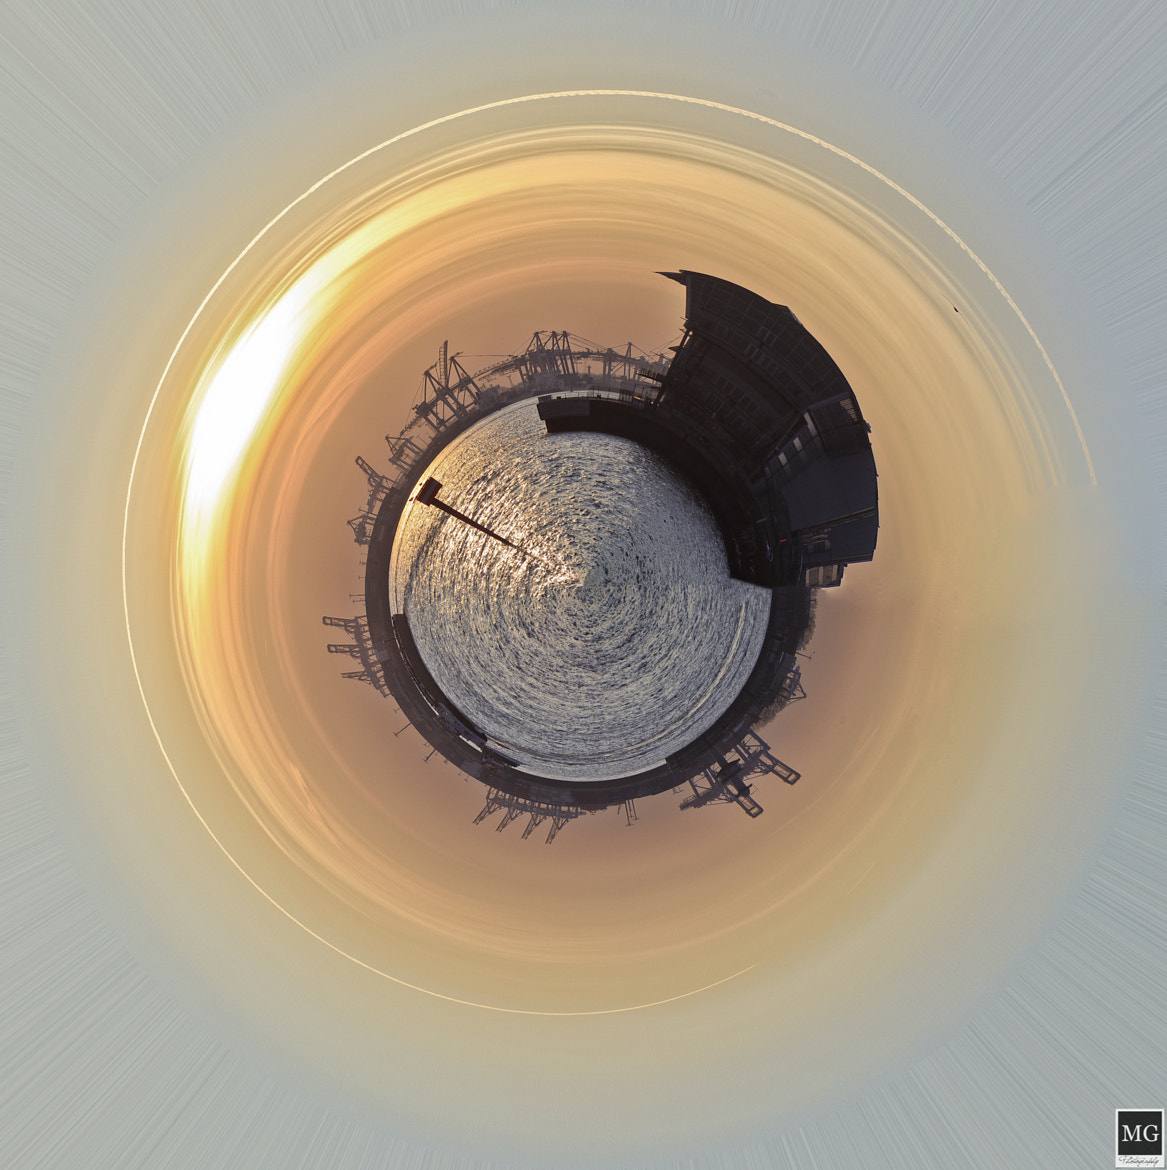 Photograph Planet Elbe by Marco Guerreiro on 500px